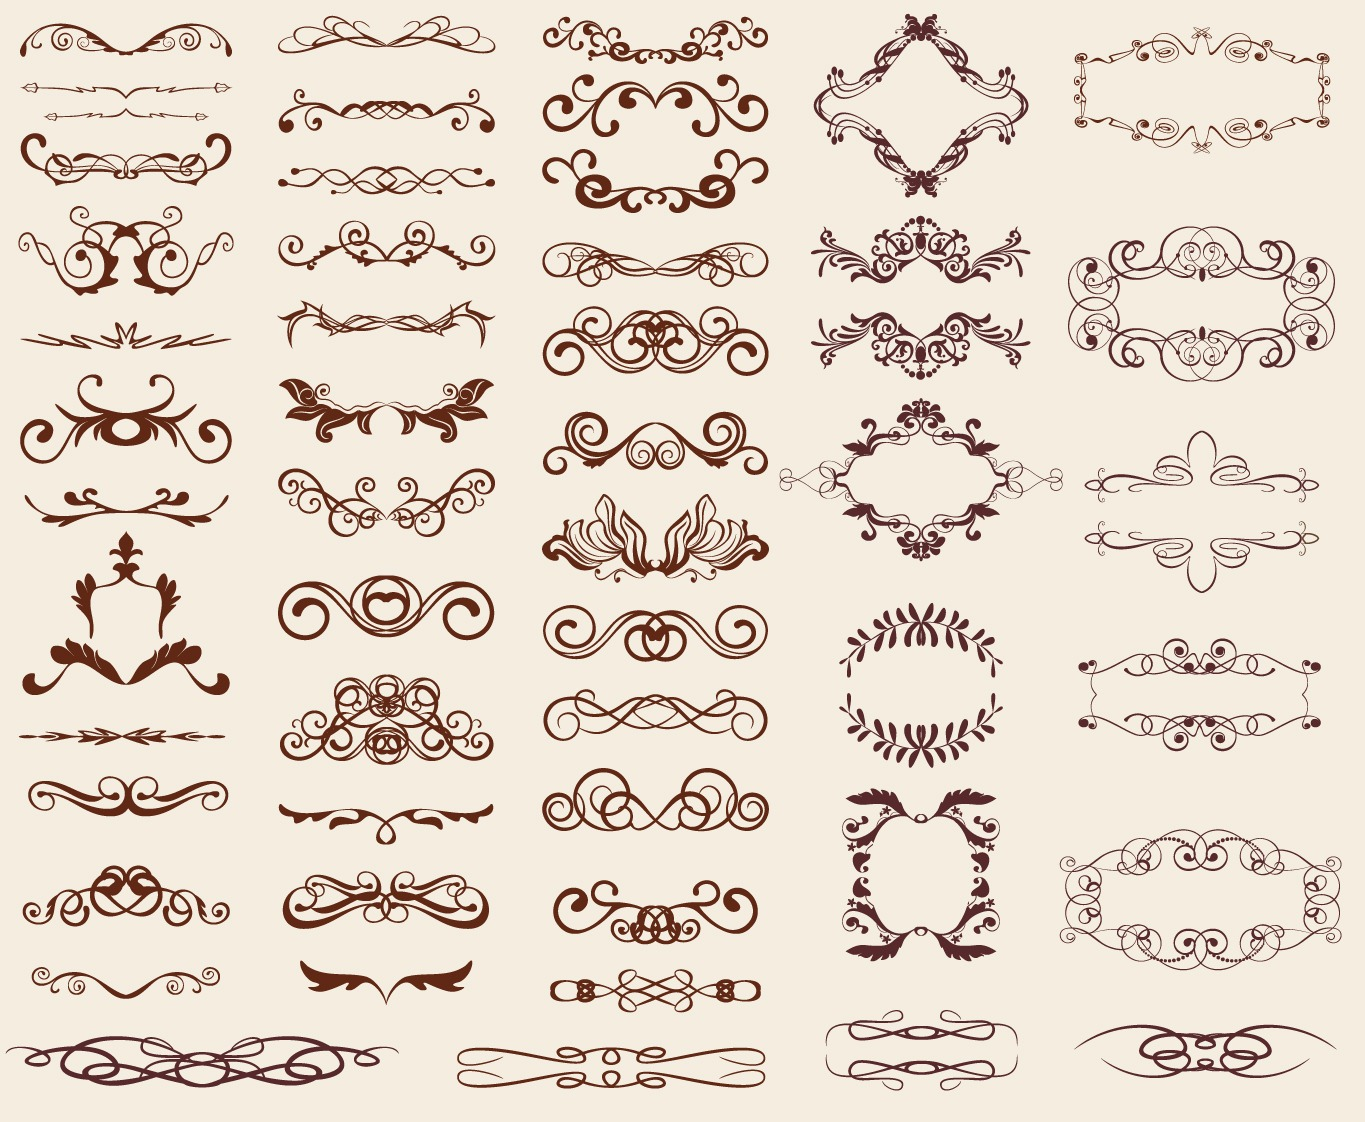 images of retro design elements free vector graphics all web resources wallpaper wallpaper